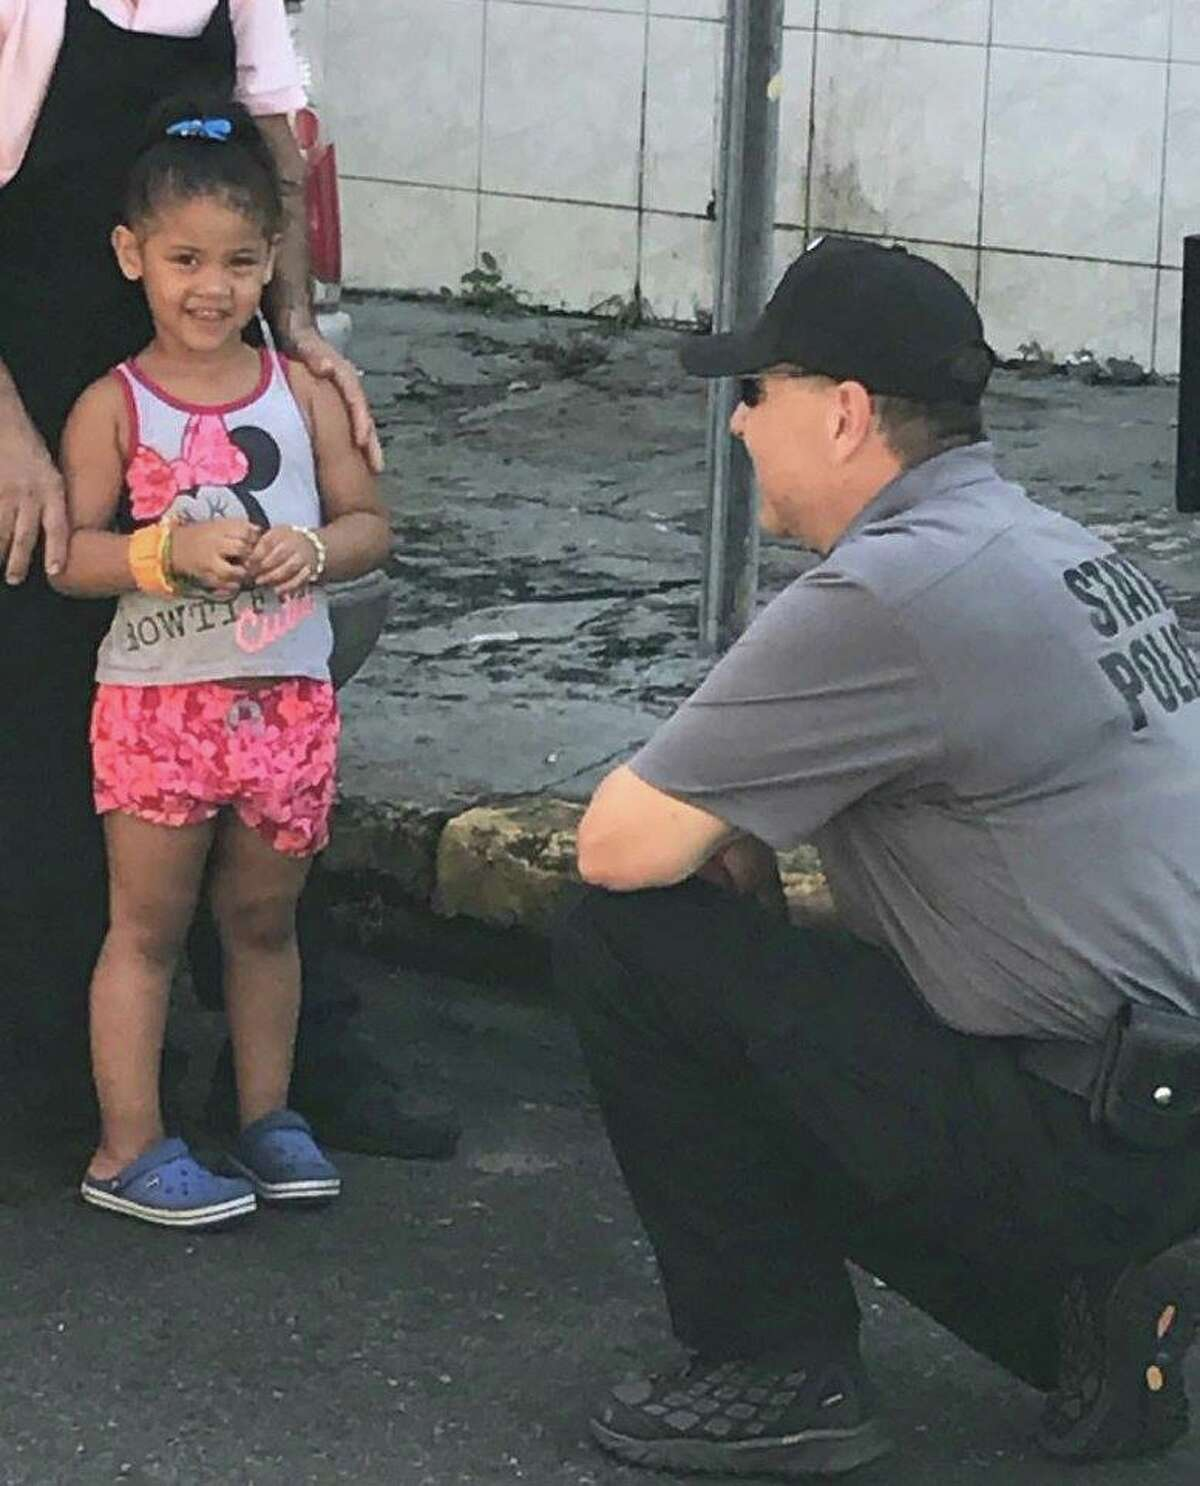 Click through for a slideshow of State Troopers helping out in Puerto Rica after Hurricane Maria. Troop G Zone Sgt. John Bellavigna talk to a little girl while conducting traffic stops in San Juan. Fifty-three troopers arrived in Puerto Rico on Friday, Sept. 29, 2017, to assist with law enforcement and humanitarian aid efforts as the U.S. territory recovers from the devastation of Hurricane Maria.